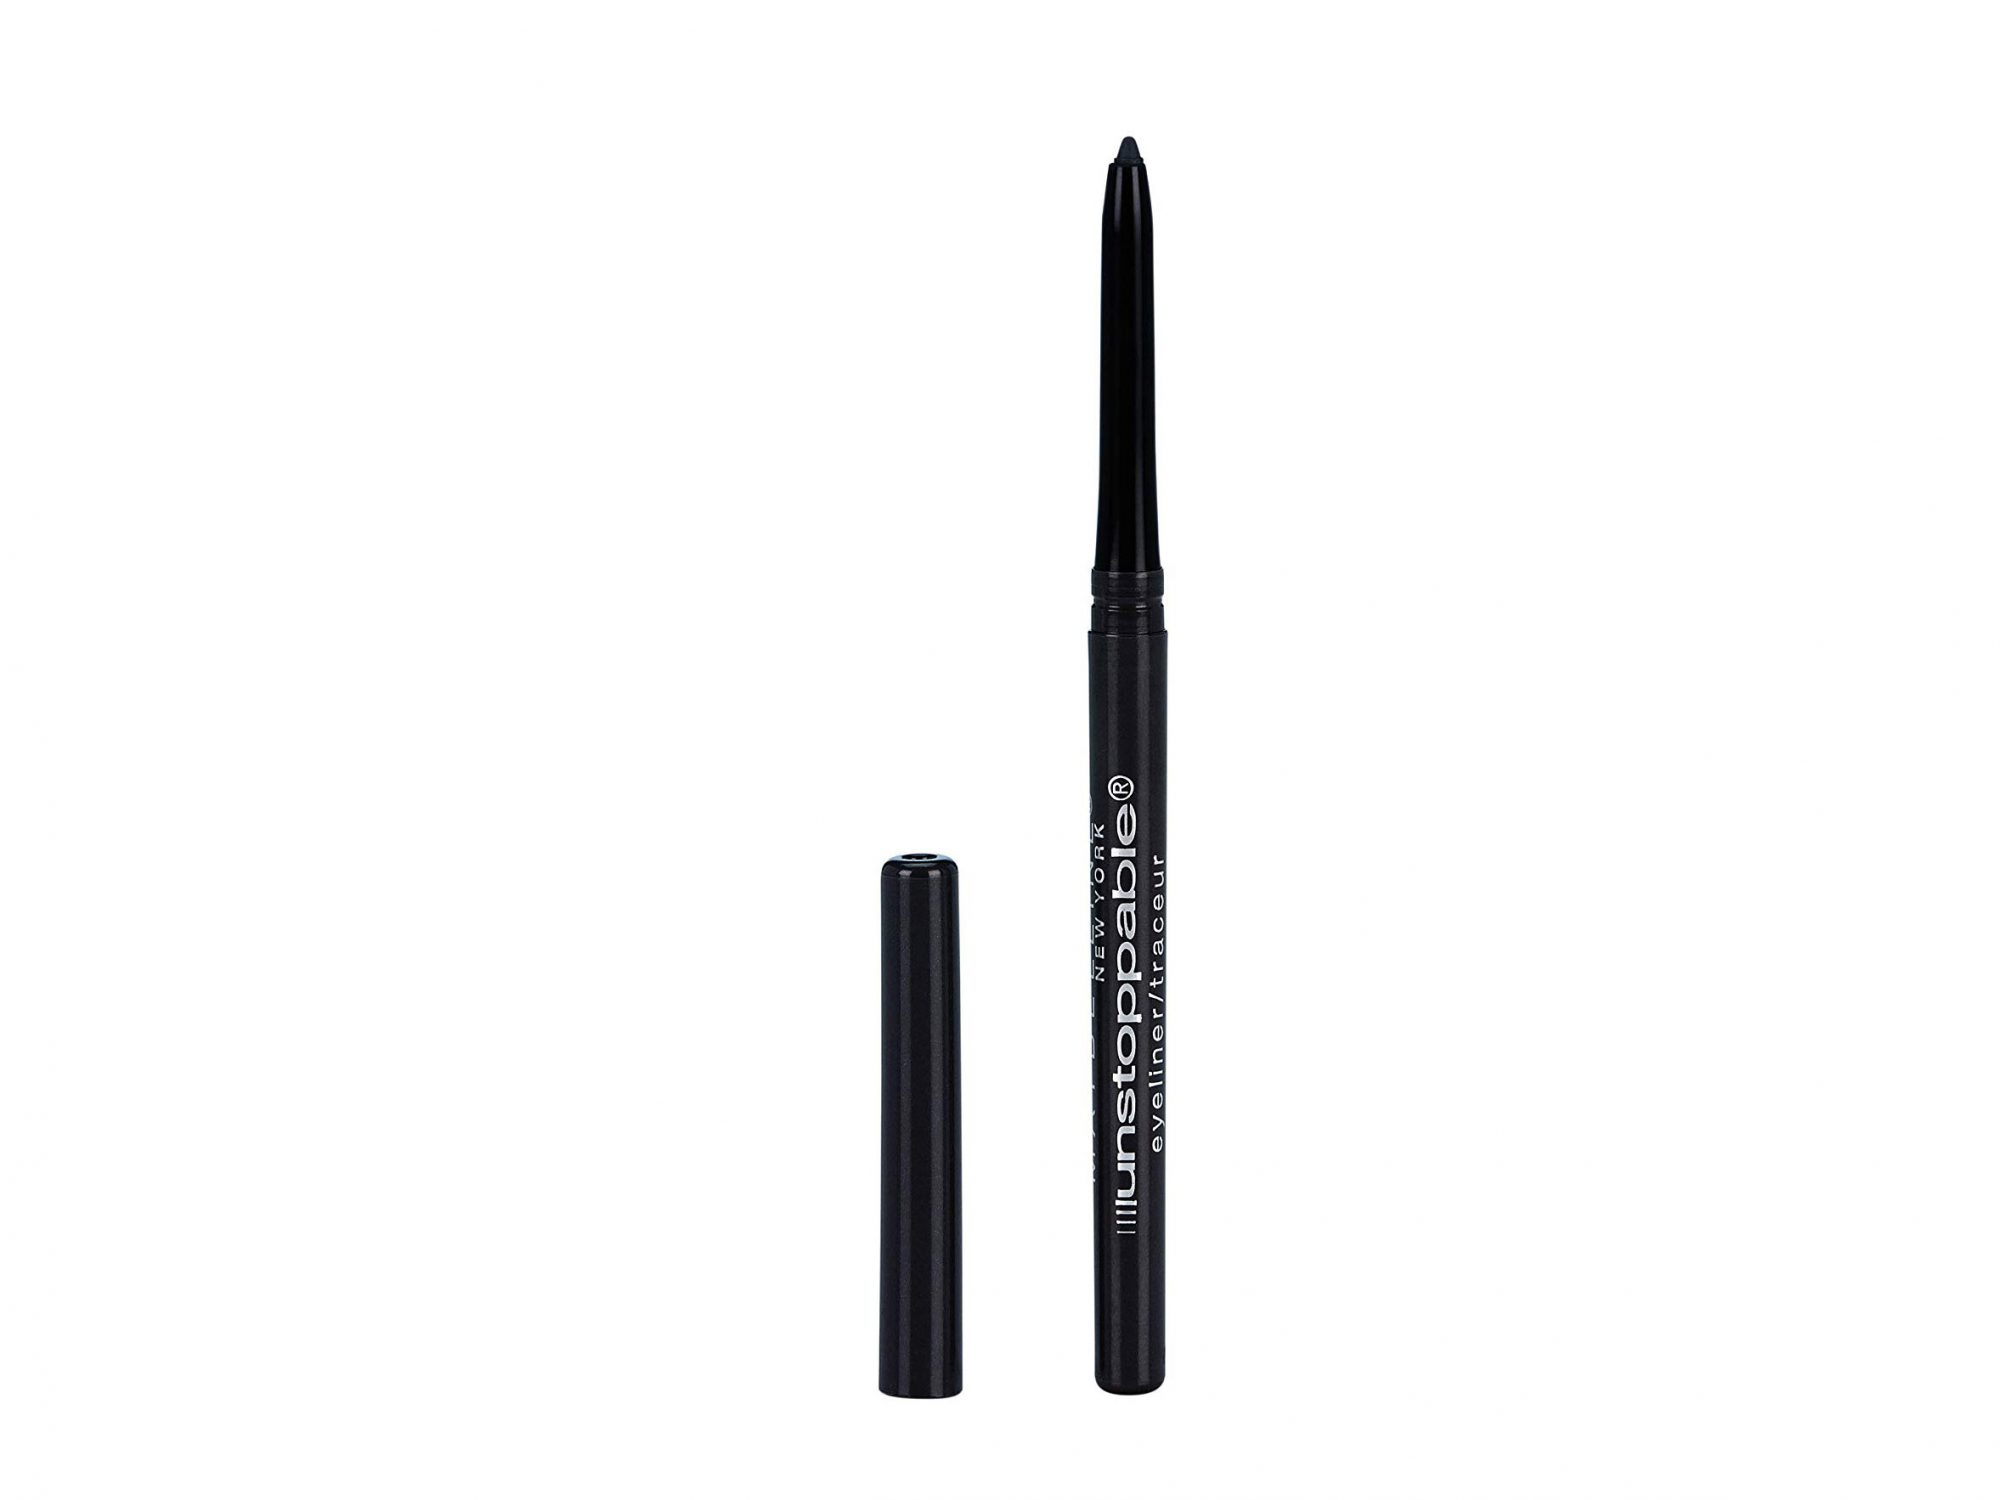 Maybelline New York Unstoppable Eyeliner